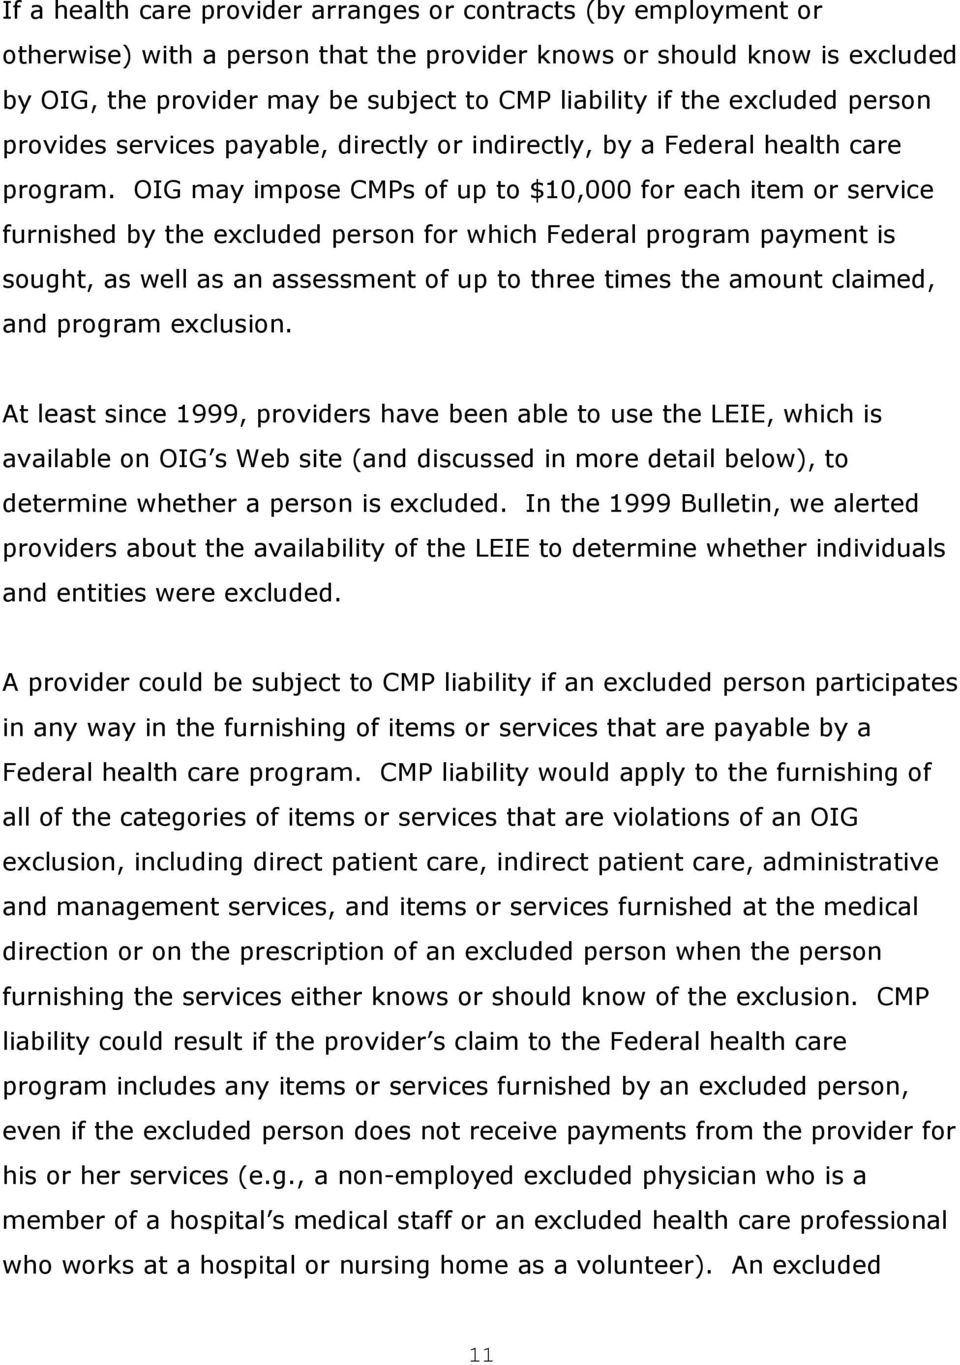 OIG may impose CMPs of up to $10,000 for each item or service furnished by the excluded person for which Federal program payment is sought, as well as an assessment of up to three times the amount